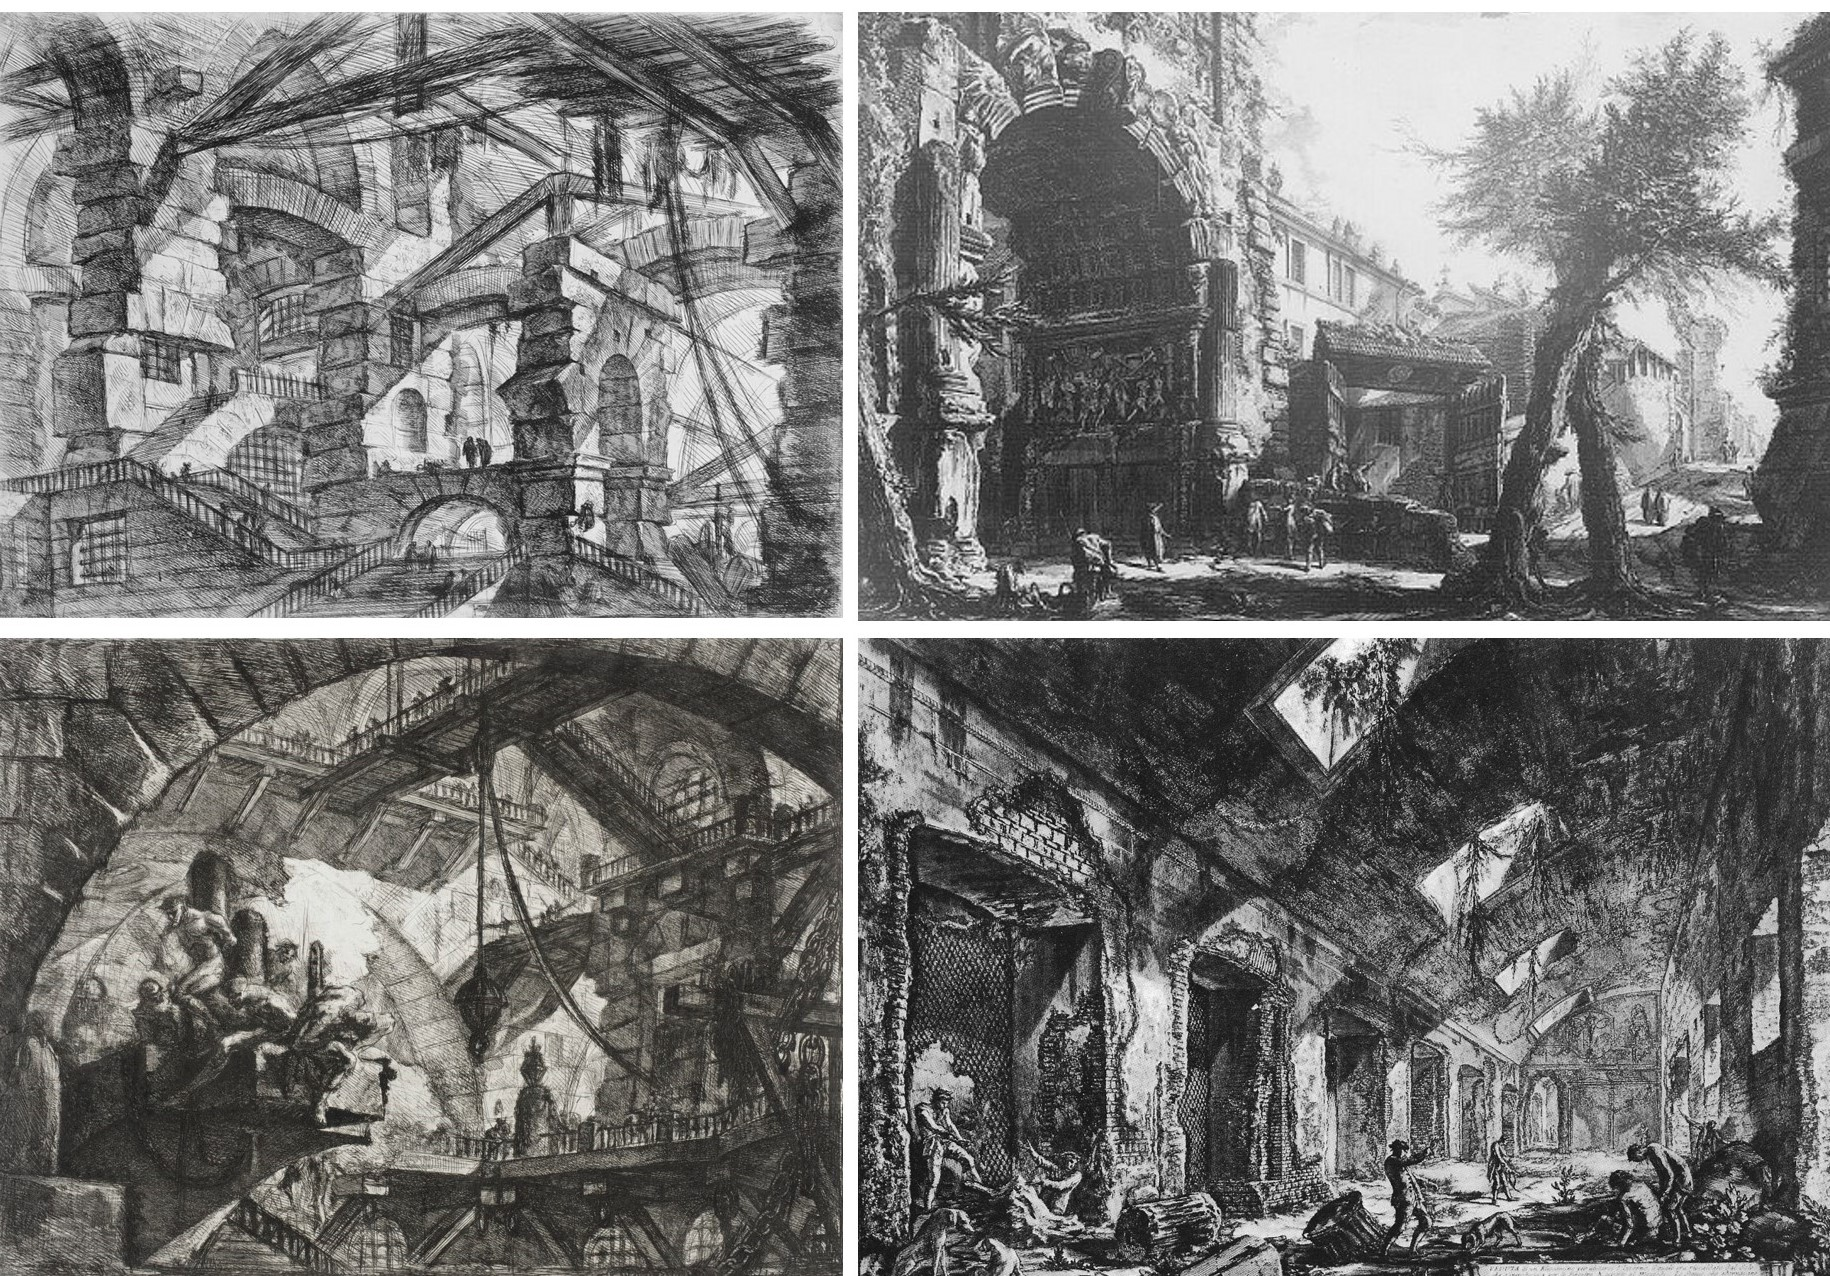 TERRIFYING BEAUTY 18th century architect Giovanni Piranesi made awesome imagery of terrifying scenes like imaginary prisons and Roman ruins. As spectacular as they are the images portray squalid scenes. And yet they ignited a romantic love affair with ruins that prevails to this day.